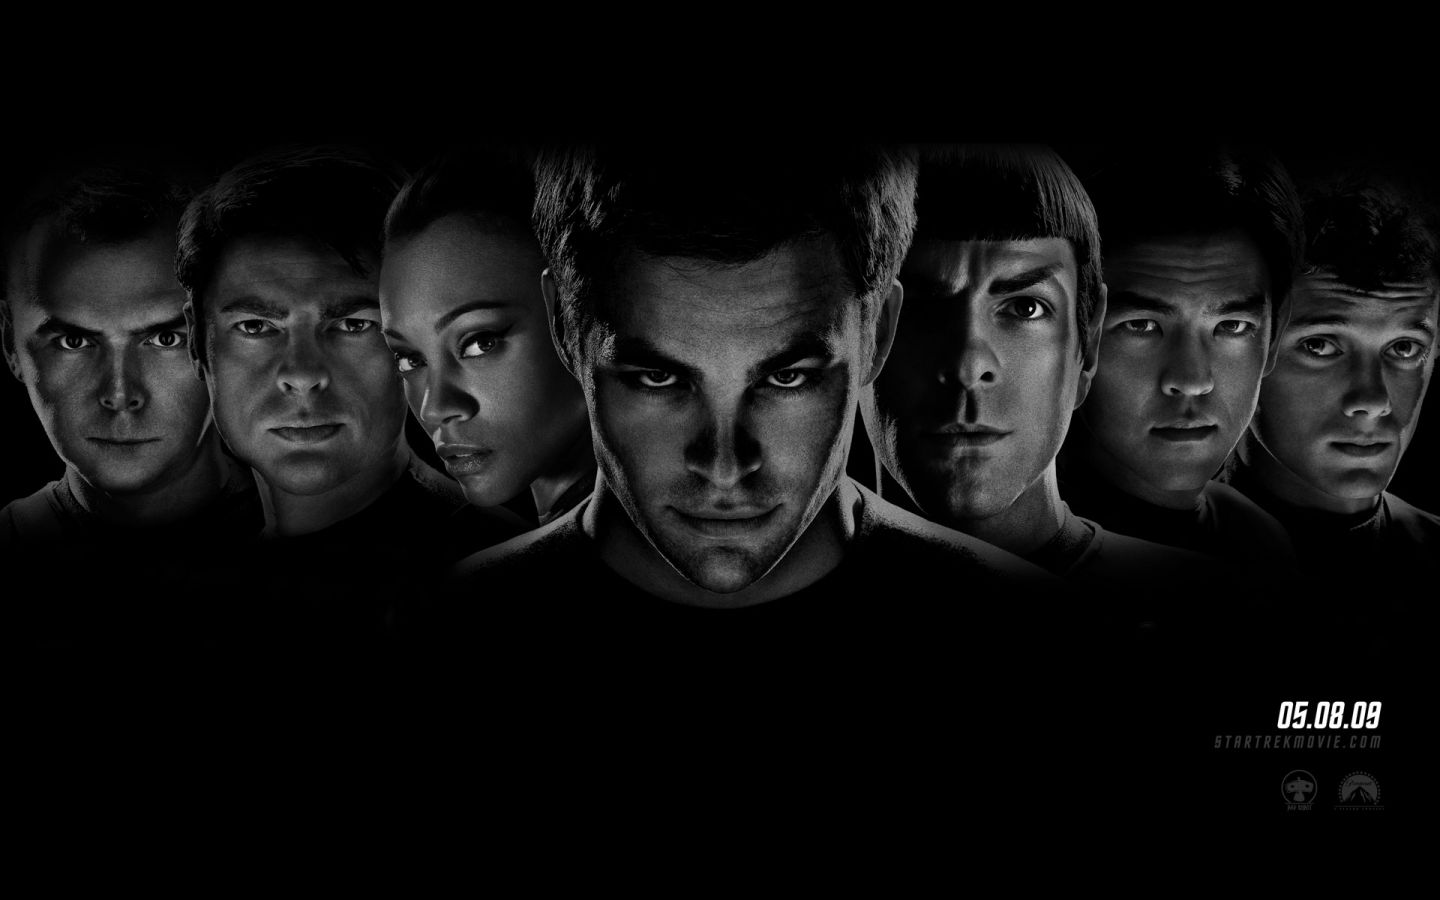 Star Trek 2009 Faces Wallpaper 1440x900